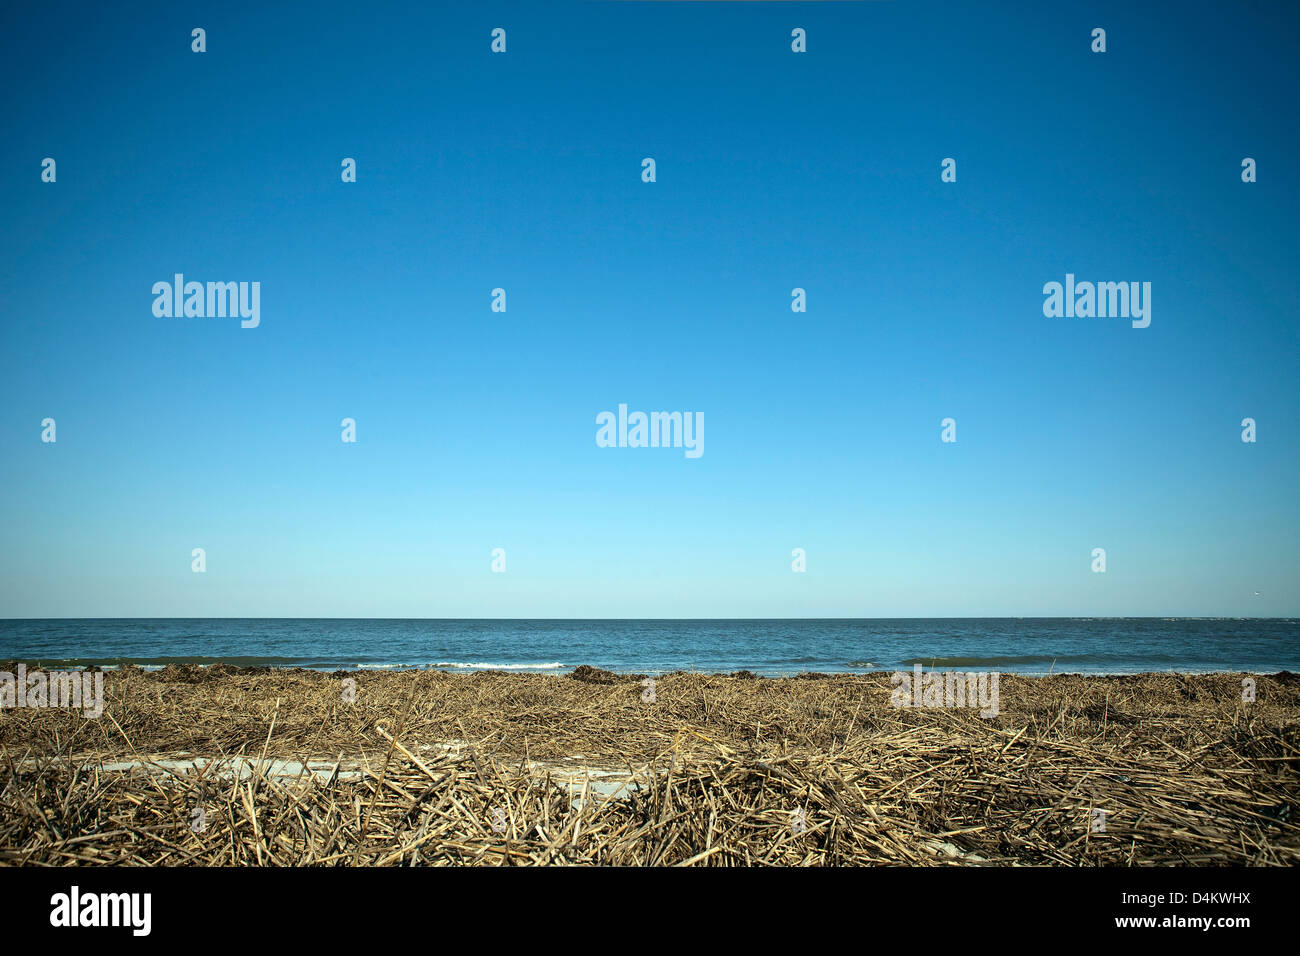 Dry grass and beach - Stock Image